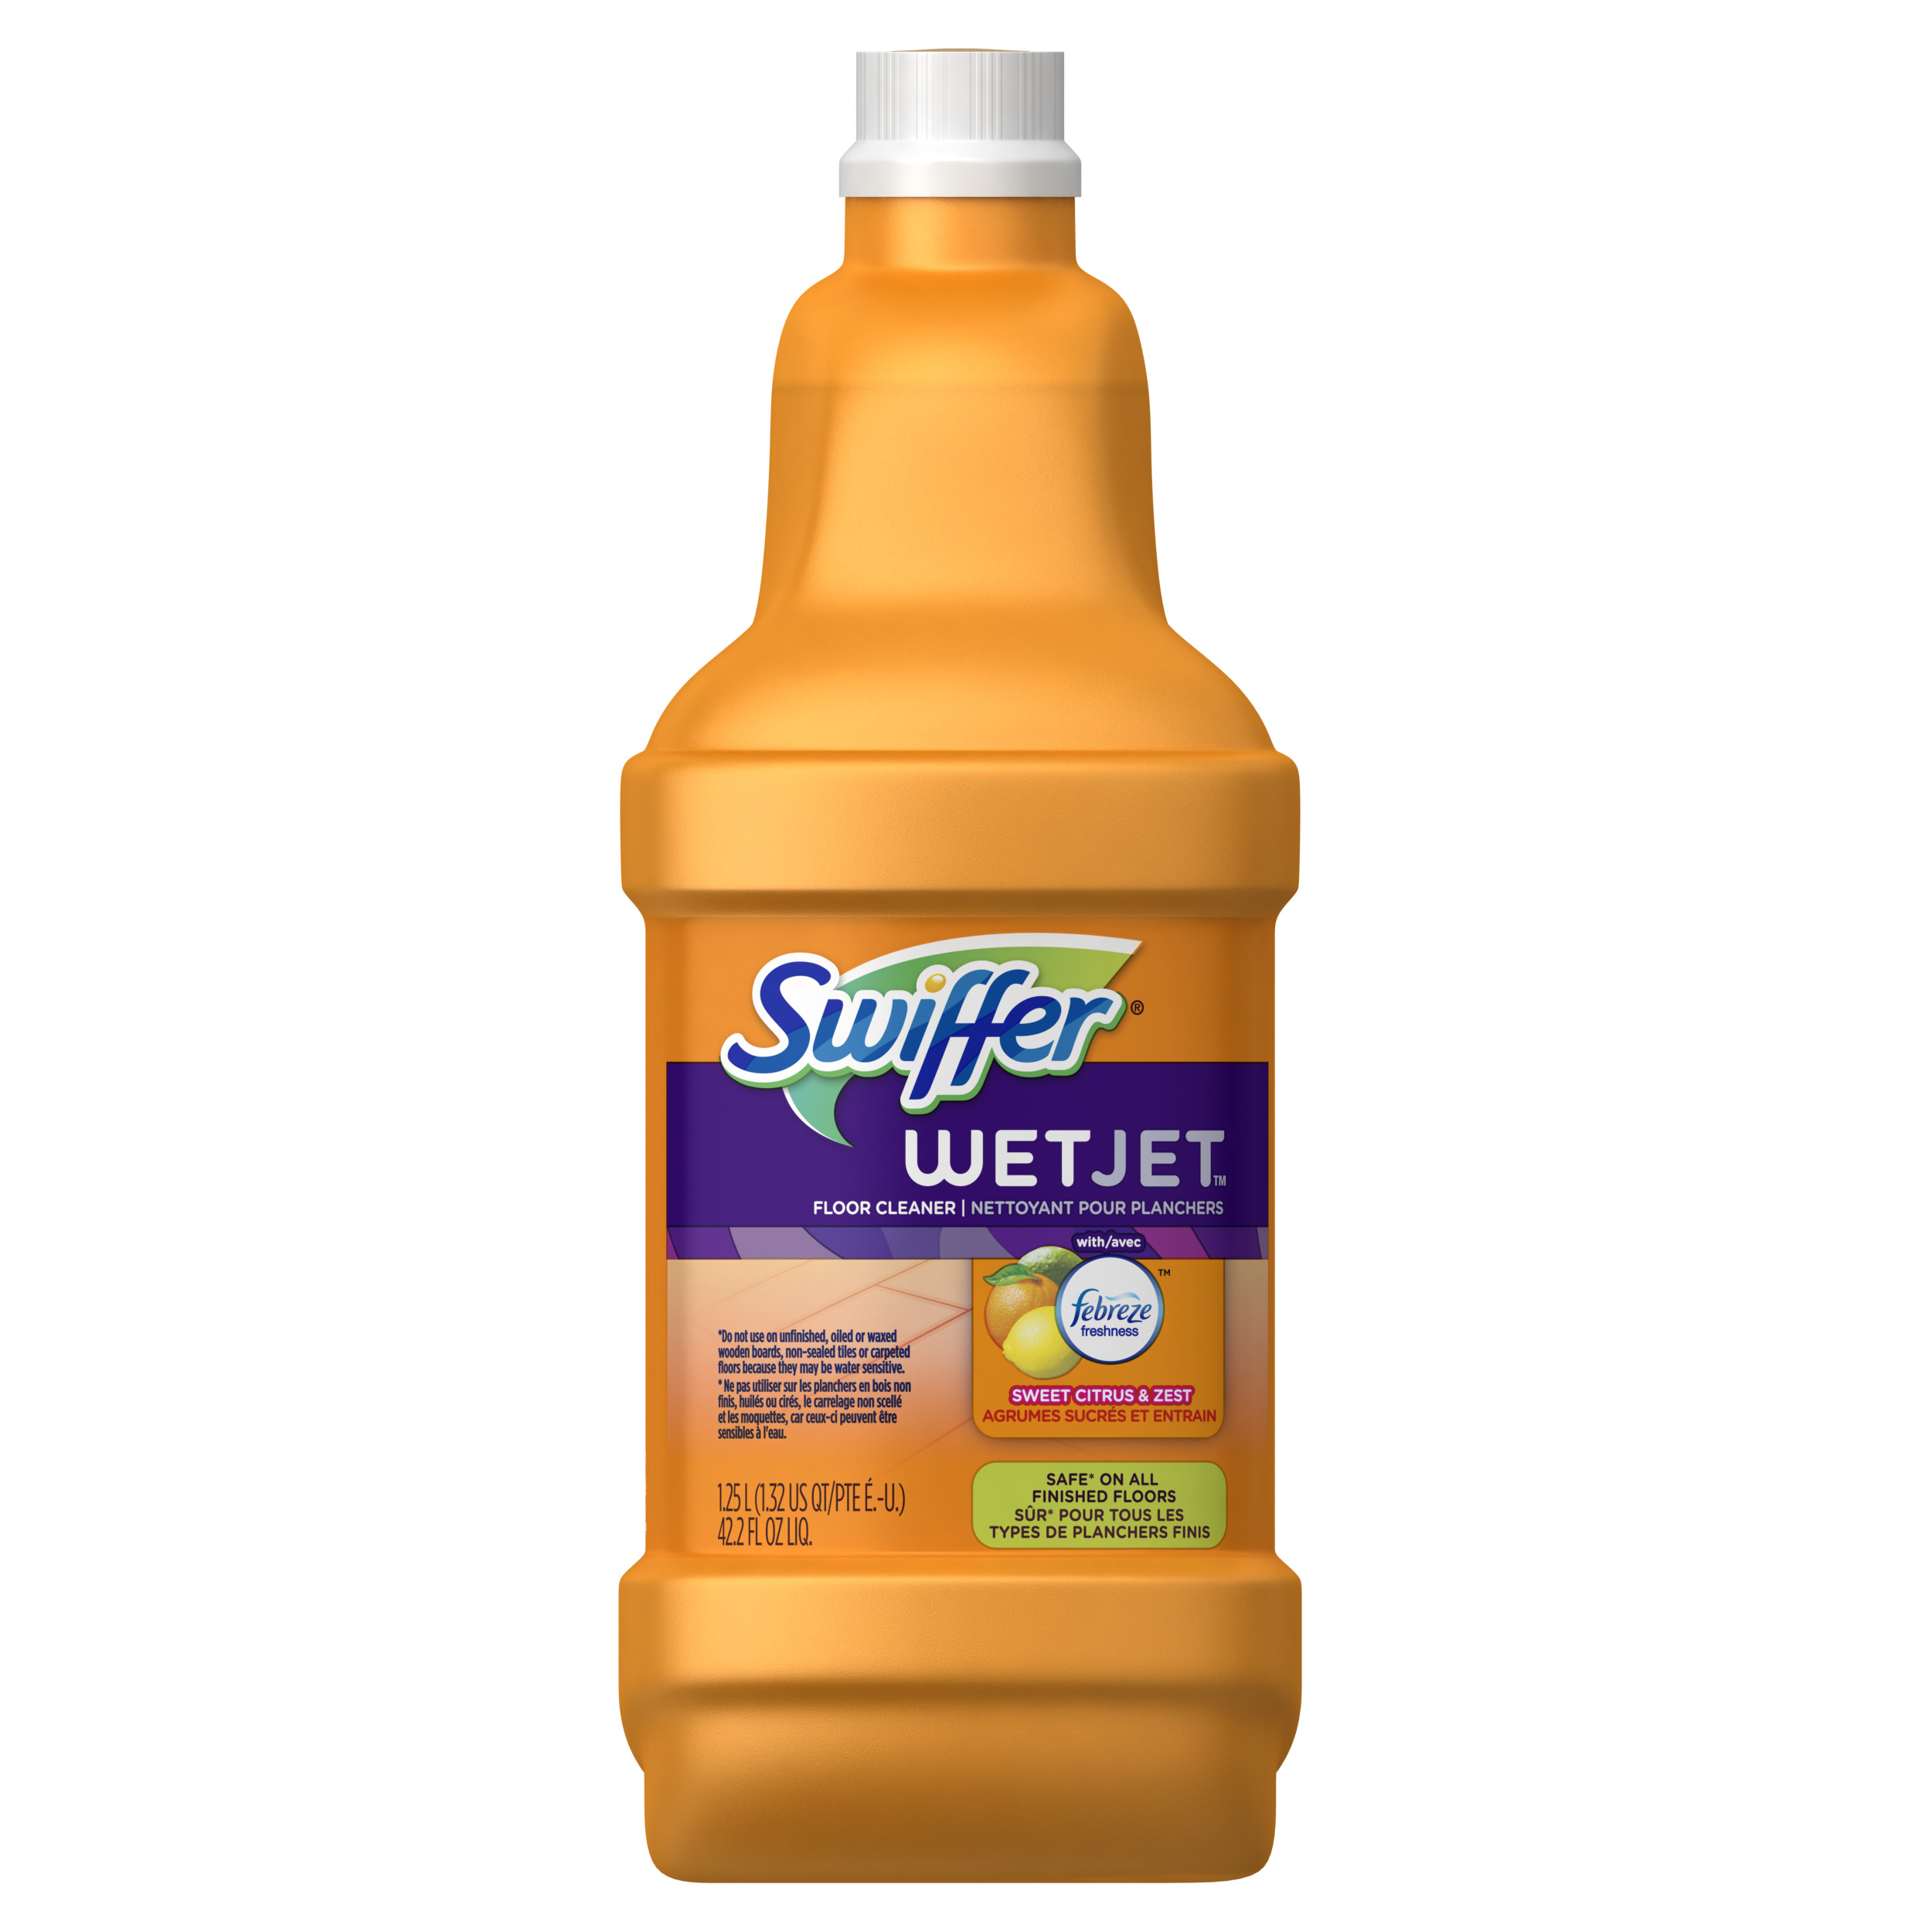 Swiffer WetJet Multi-purpose Floor Cleaner Solution Refill with Sweet Citrus & Zest Scent 1.25 L